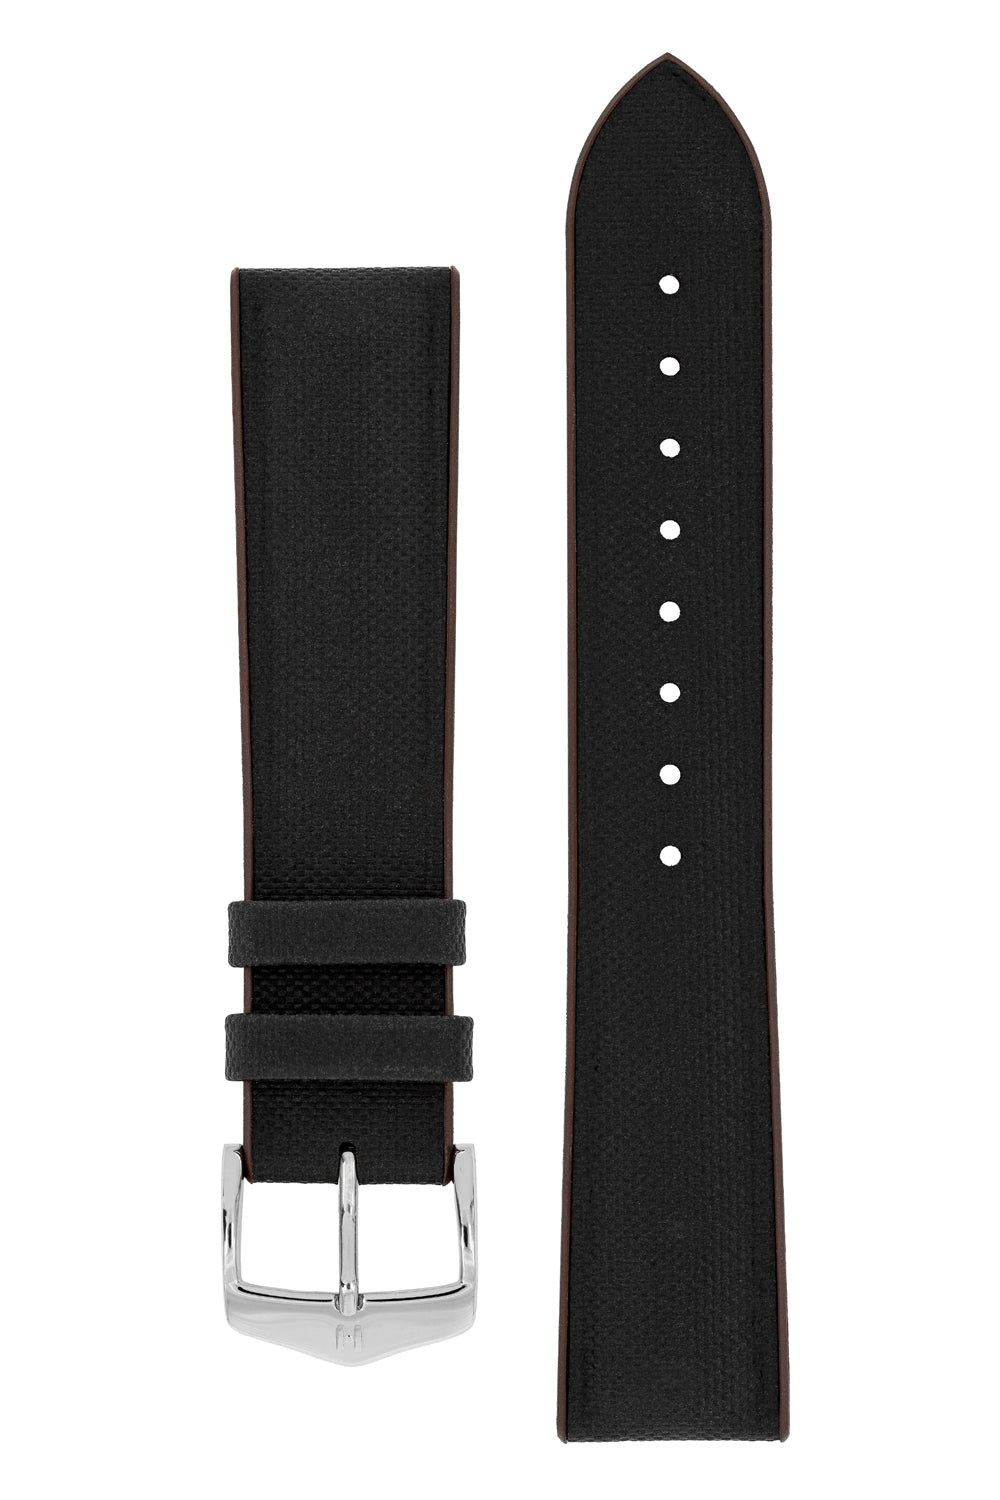 Hirsch ARNE Sailcloth Effect Performance Watch Strap in BLACK/BROWN